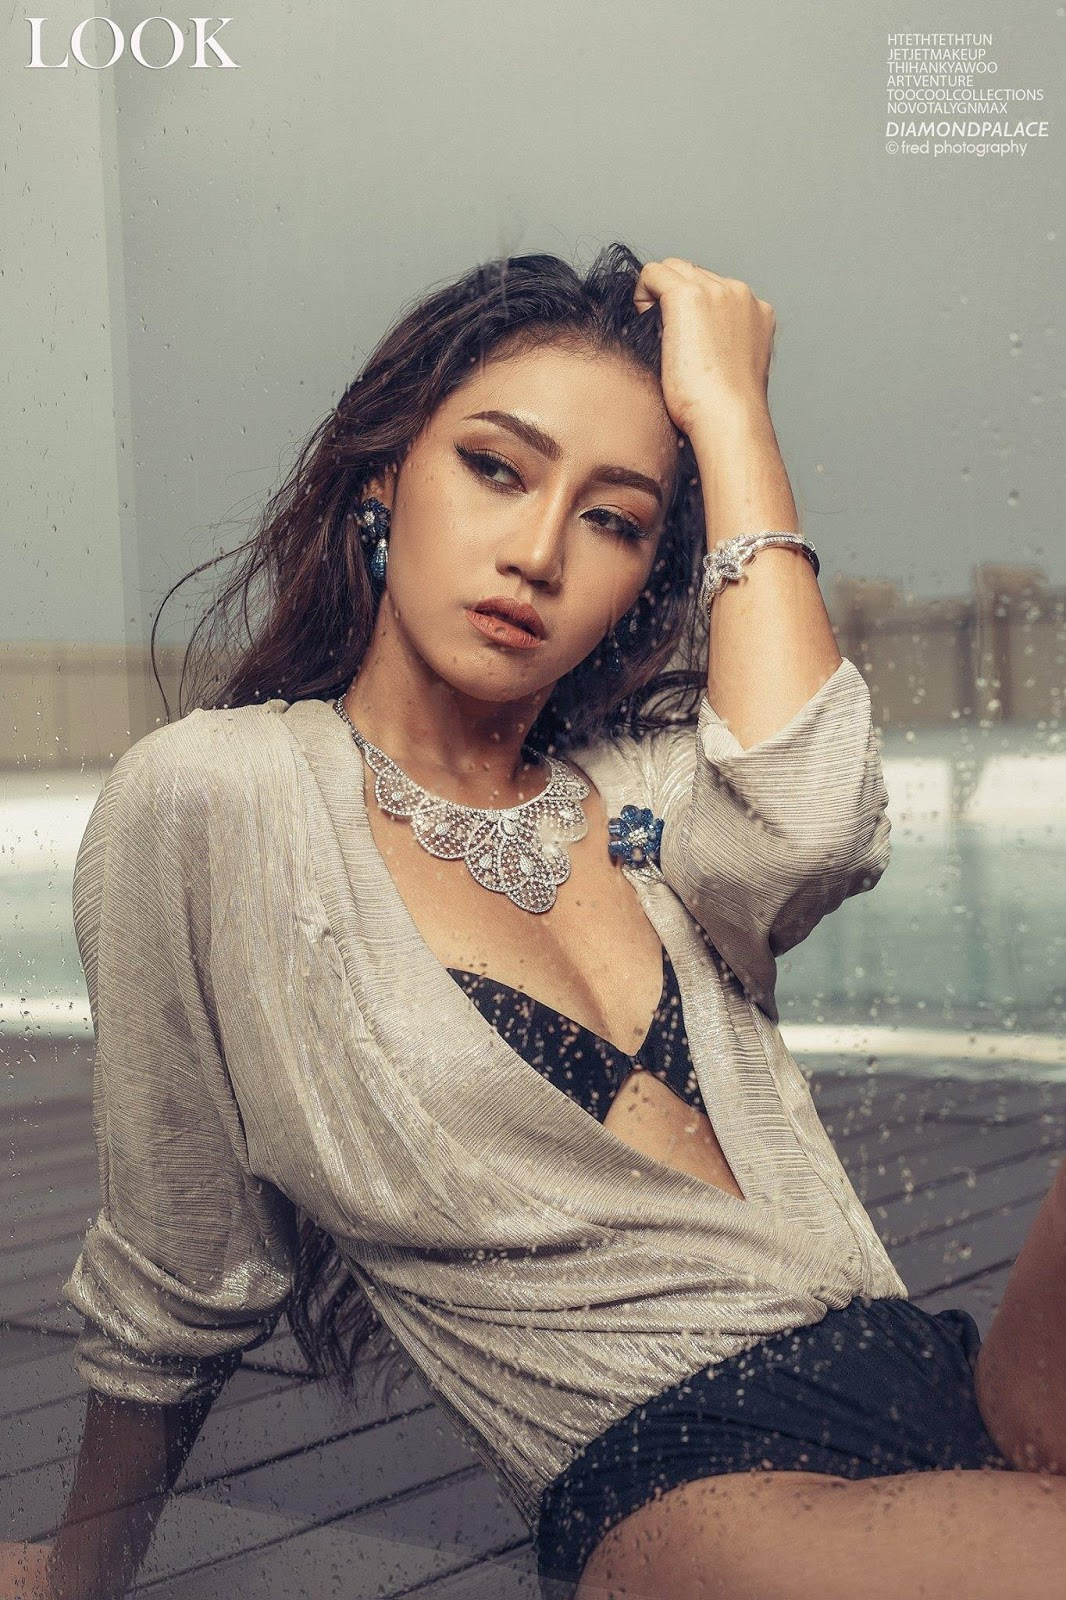 Miss Universe Myanmar Htet Htet Htun Fashion Pose In Look Magazine